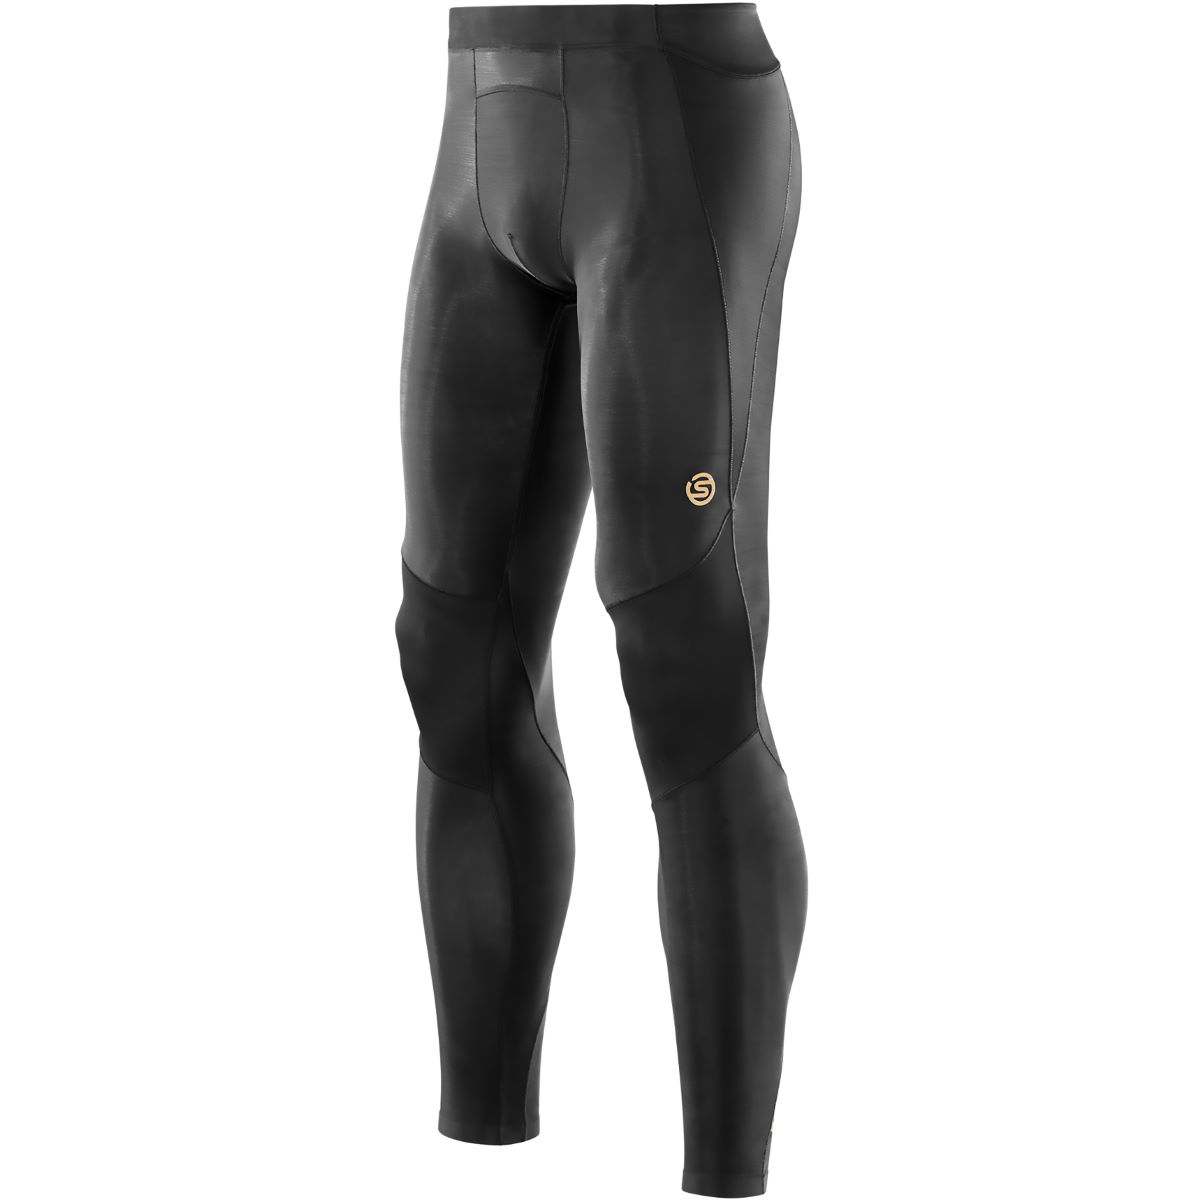 Collant long SKINS A400 - S Noir Sous-vêtements compression